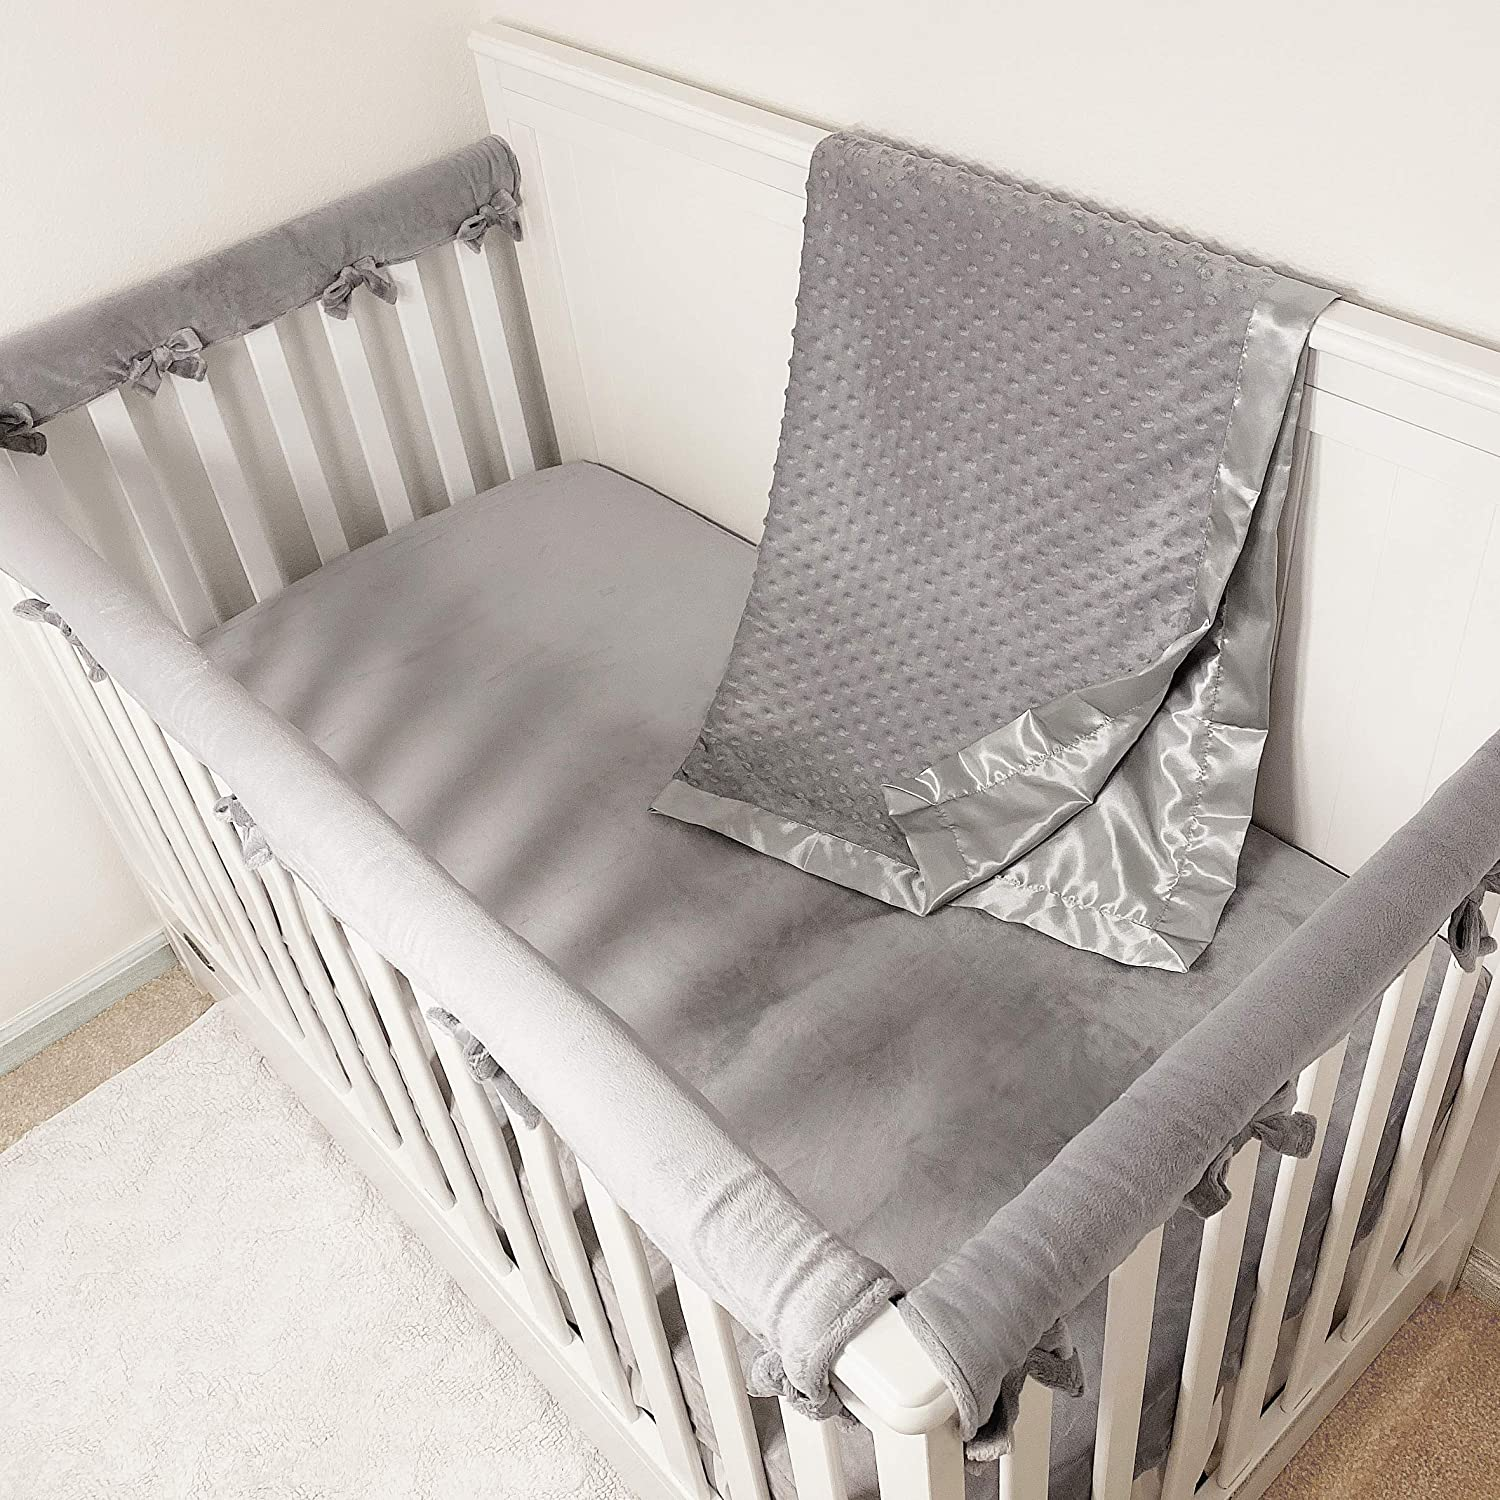 American Baby Company Heavenly Soft 5 Piece Crib Rail Bedding Set, Gray/White, for Boys & Girls